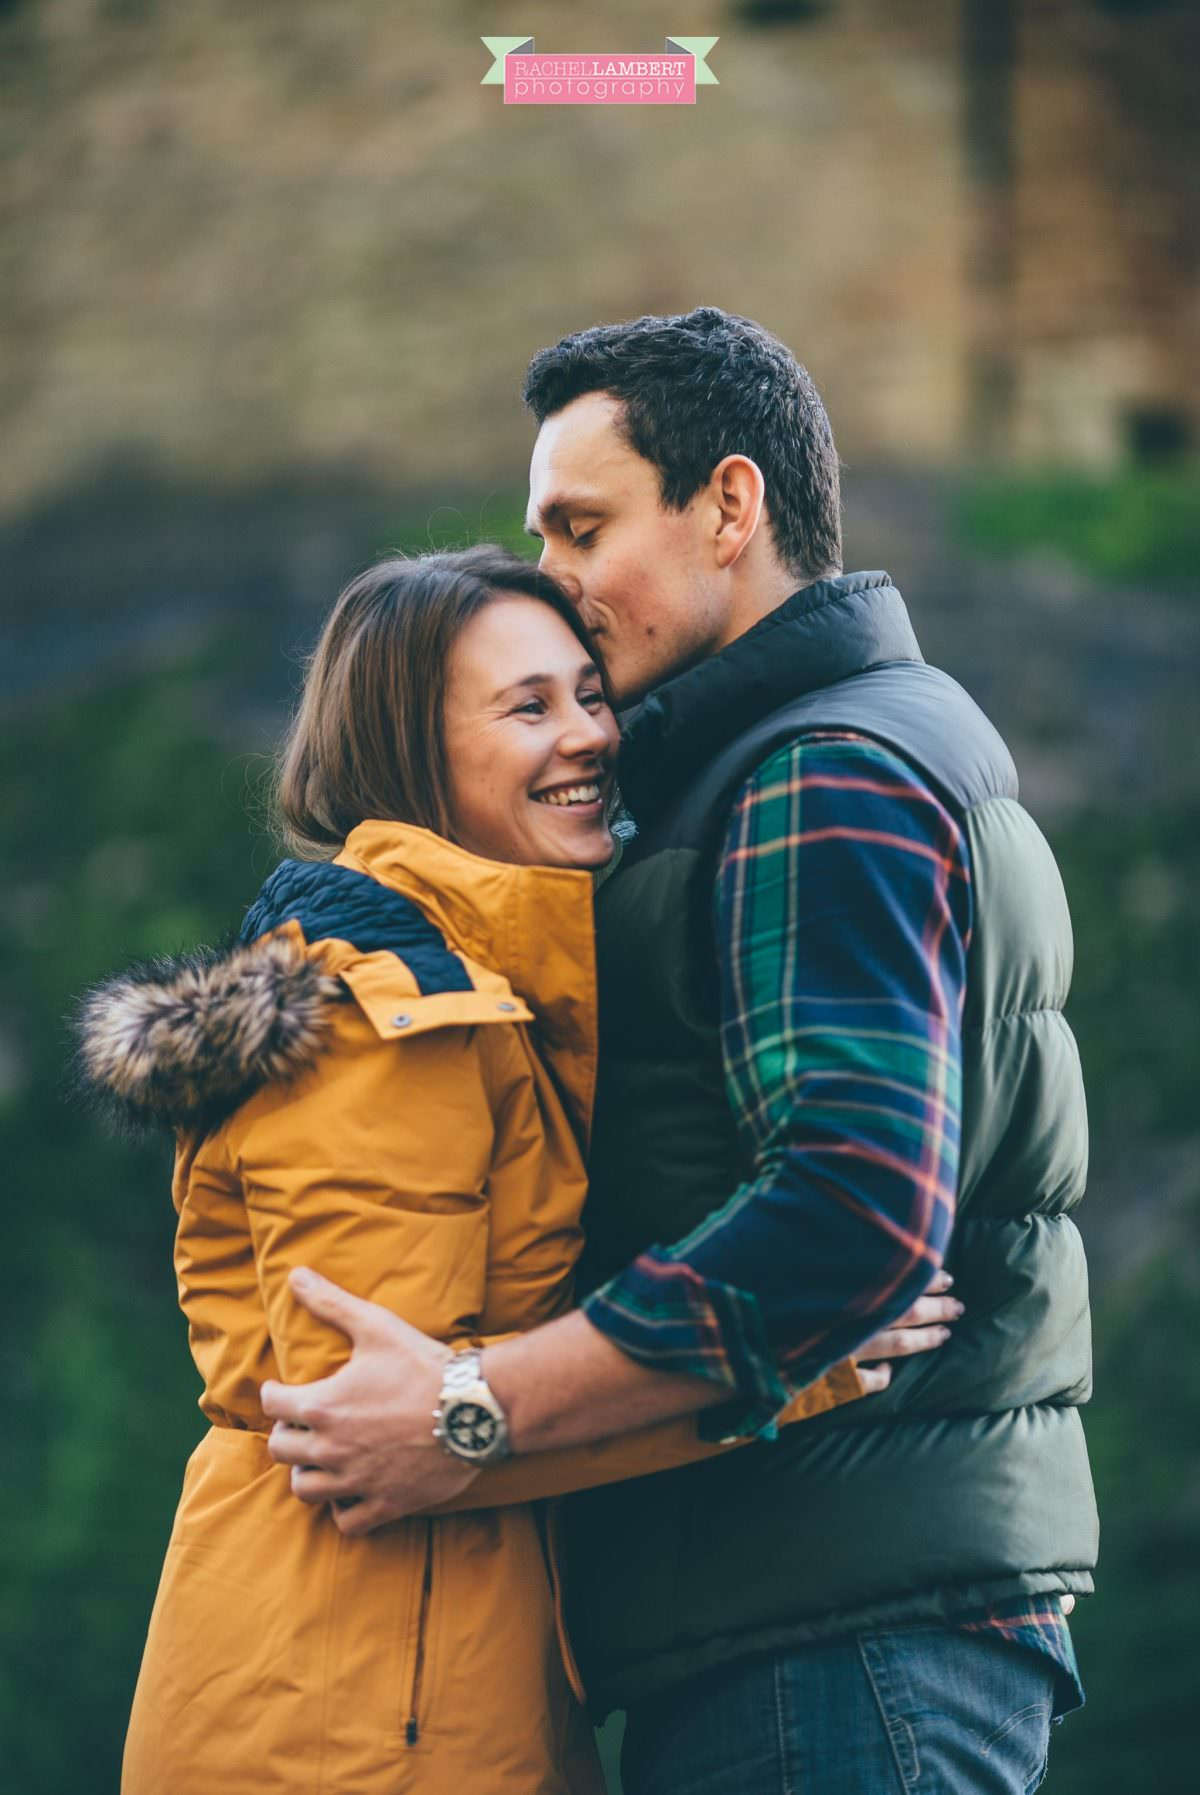 cardiff_welsh_wedding_photographer_rachel_lambert_photography_claire_chris_engagement_castell_coch_ 22